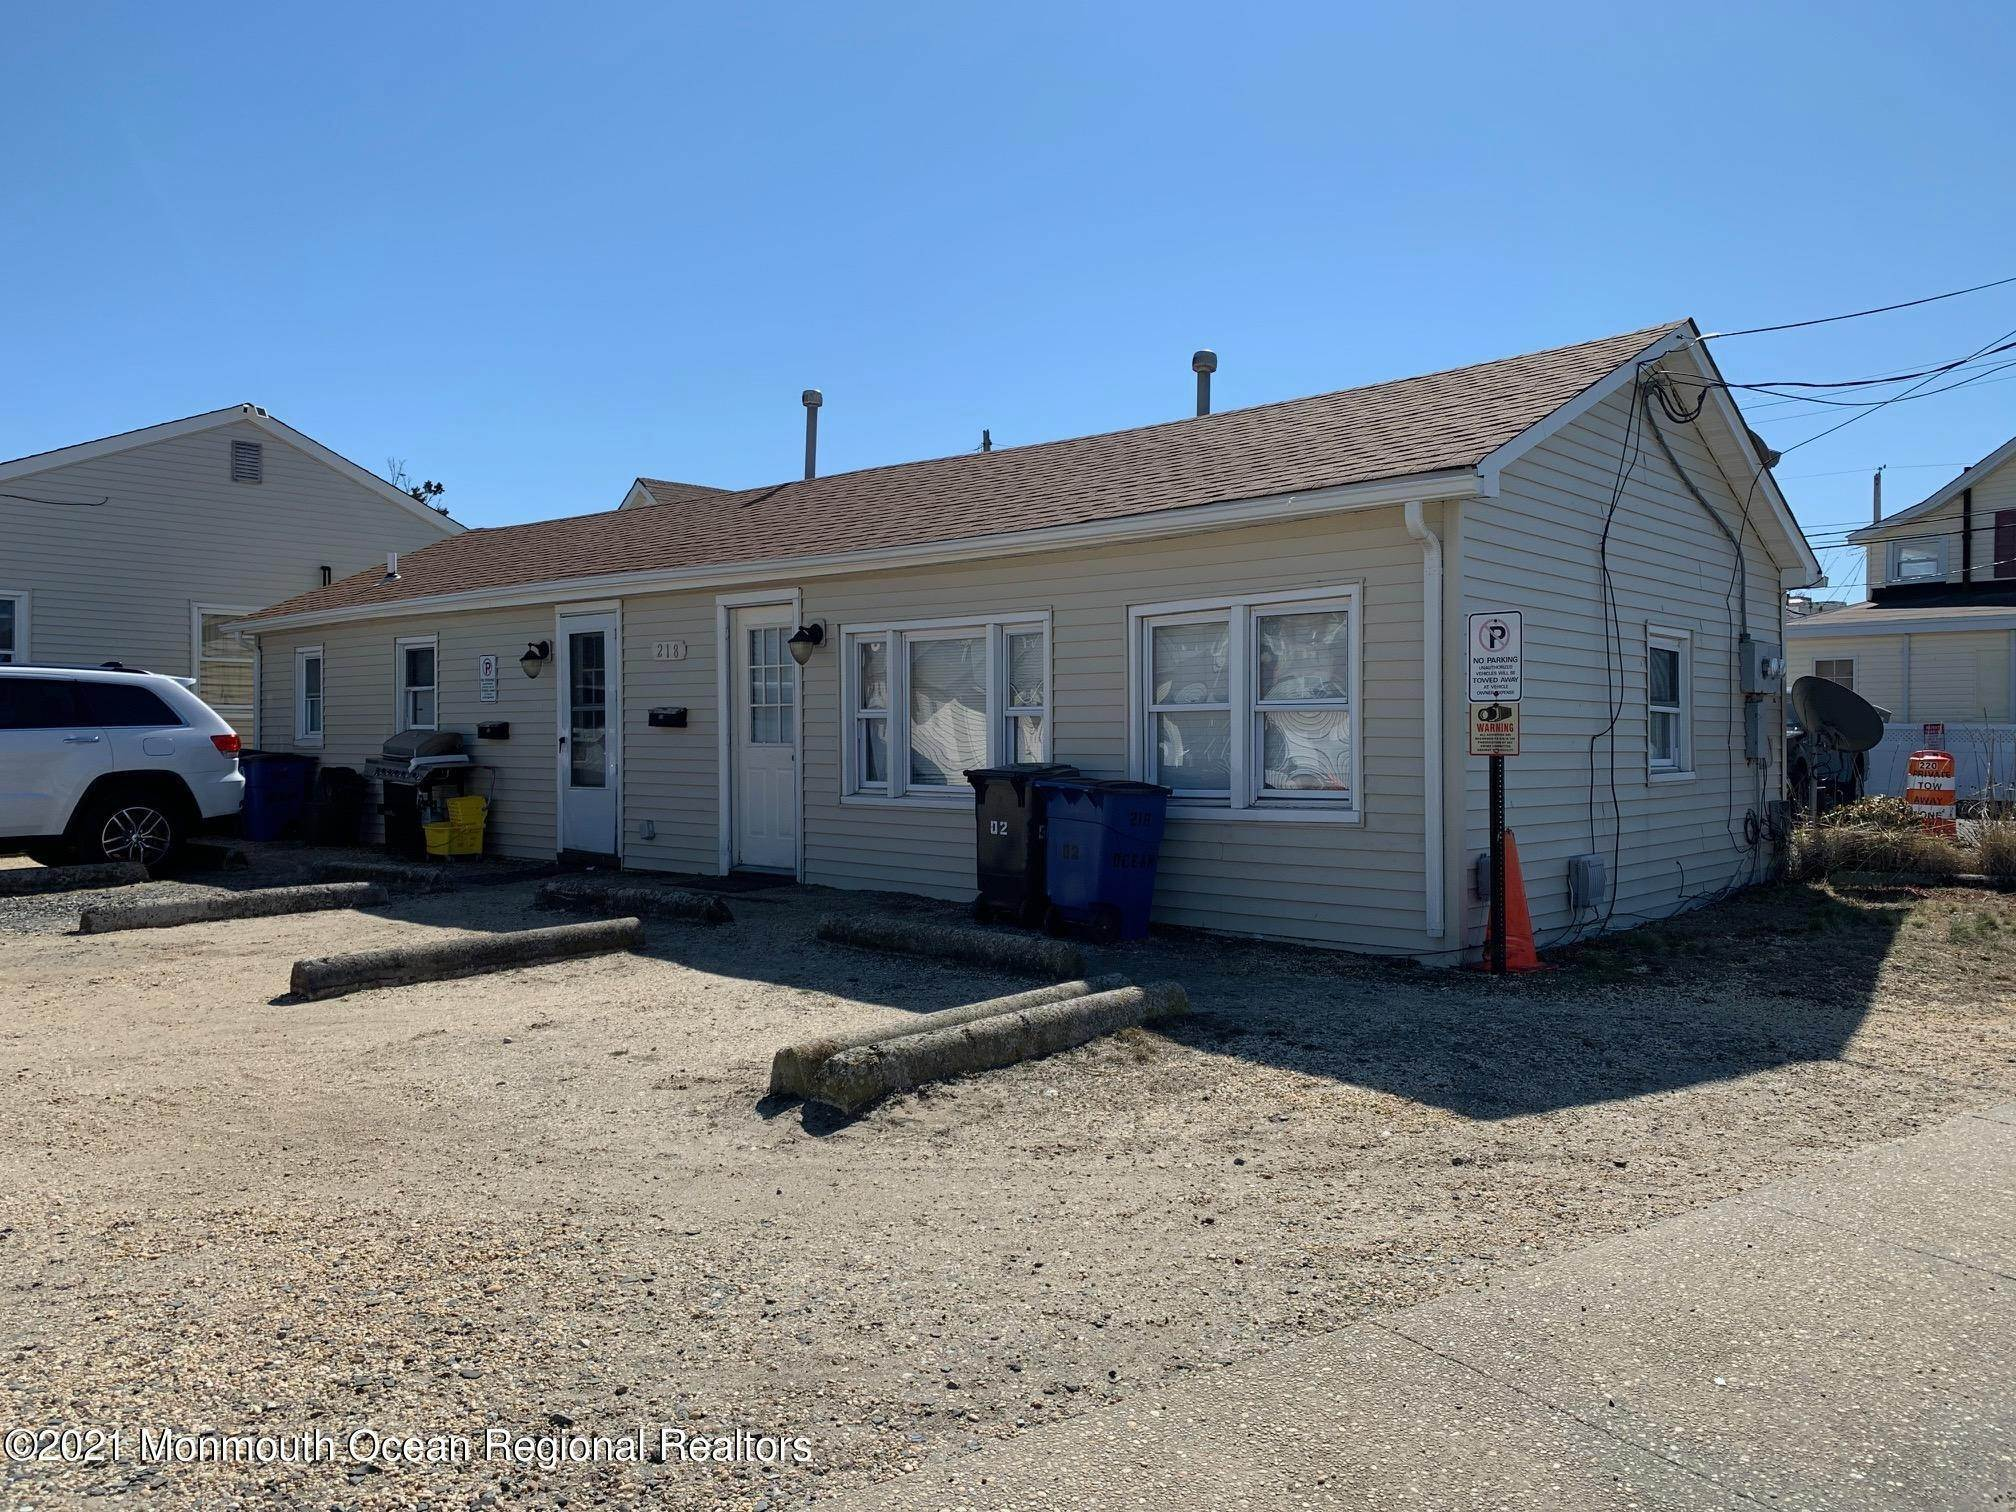 Property for Sale at 218 Ocean Avenue Point Pleasant Beach, New Jersey 08742 United States